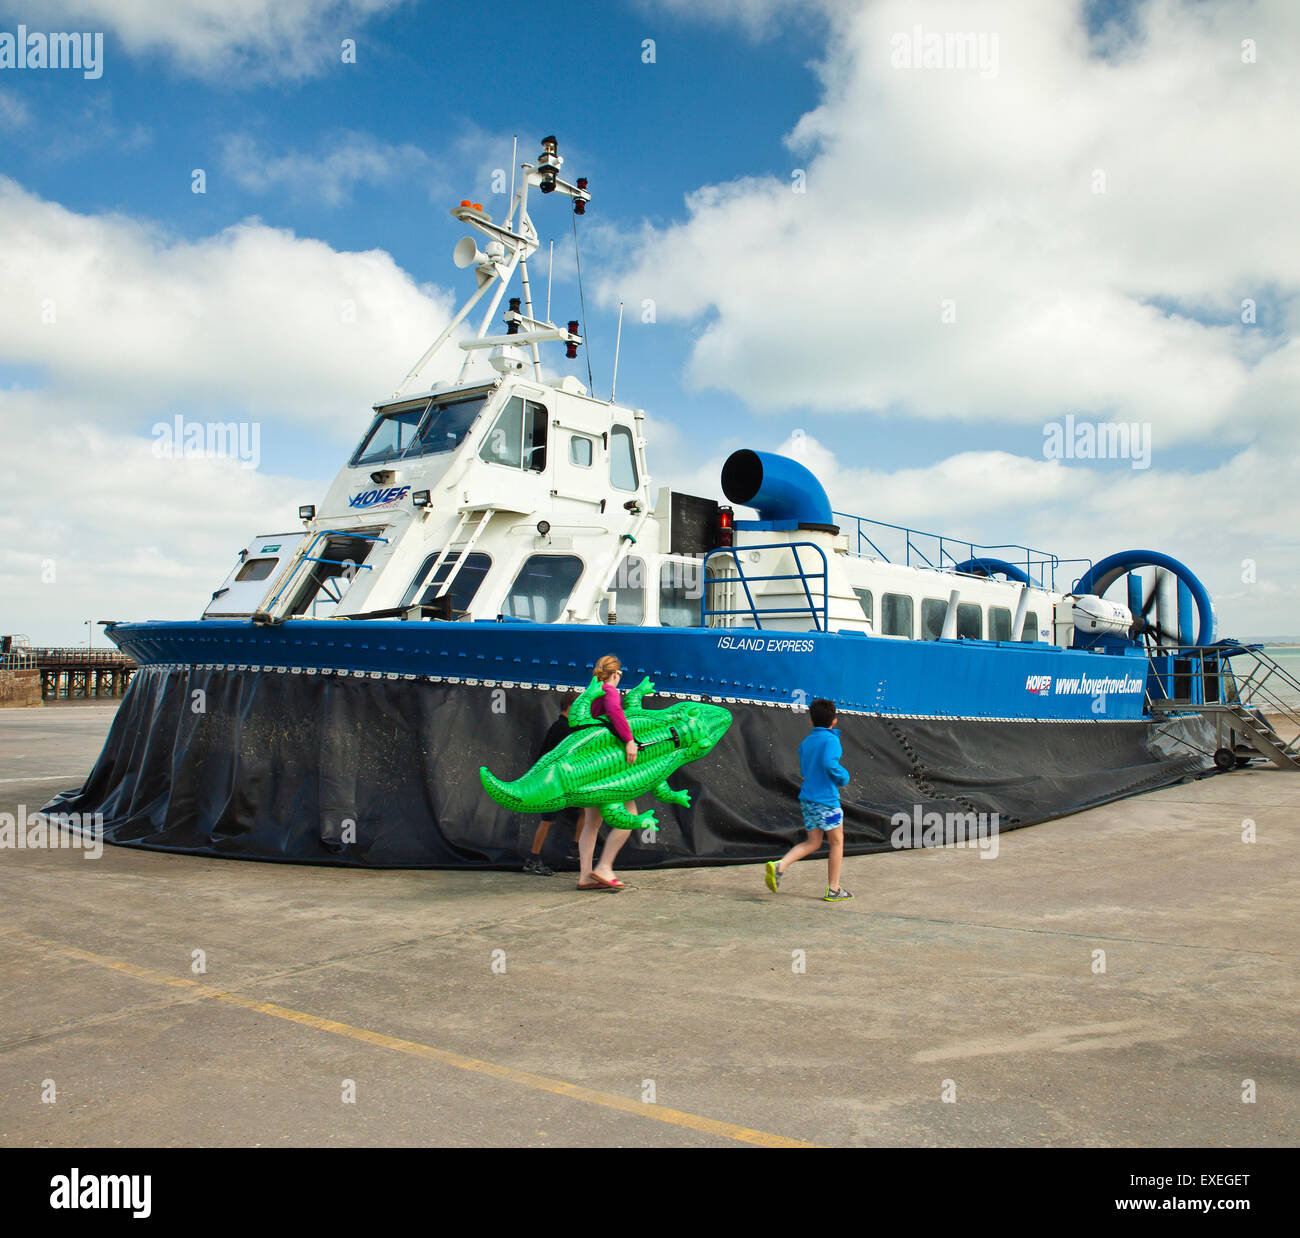 Family boarding the Isle of Wight hovercraft at Ryde. - Stock Image